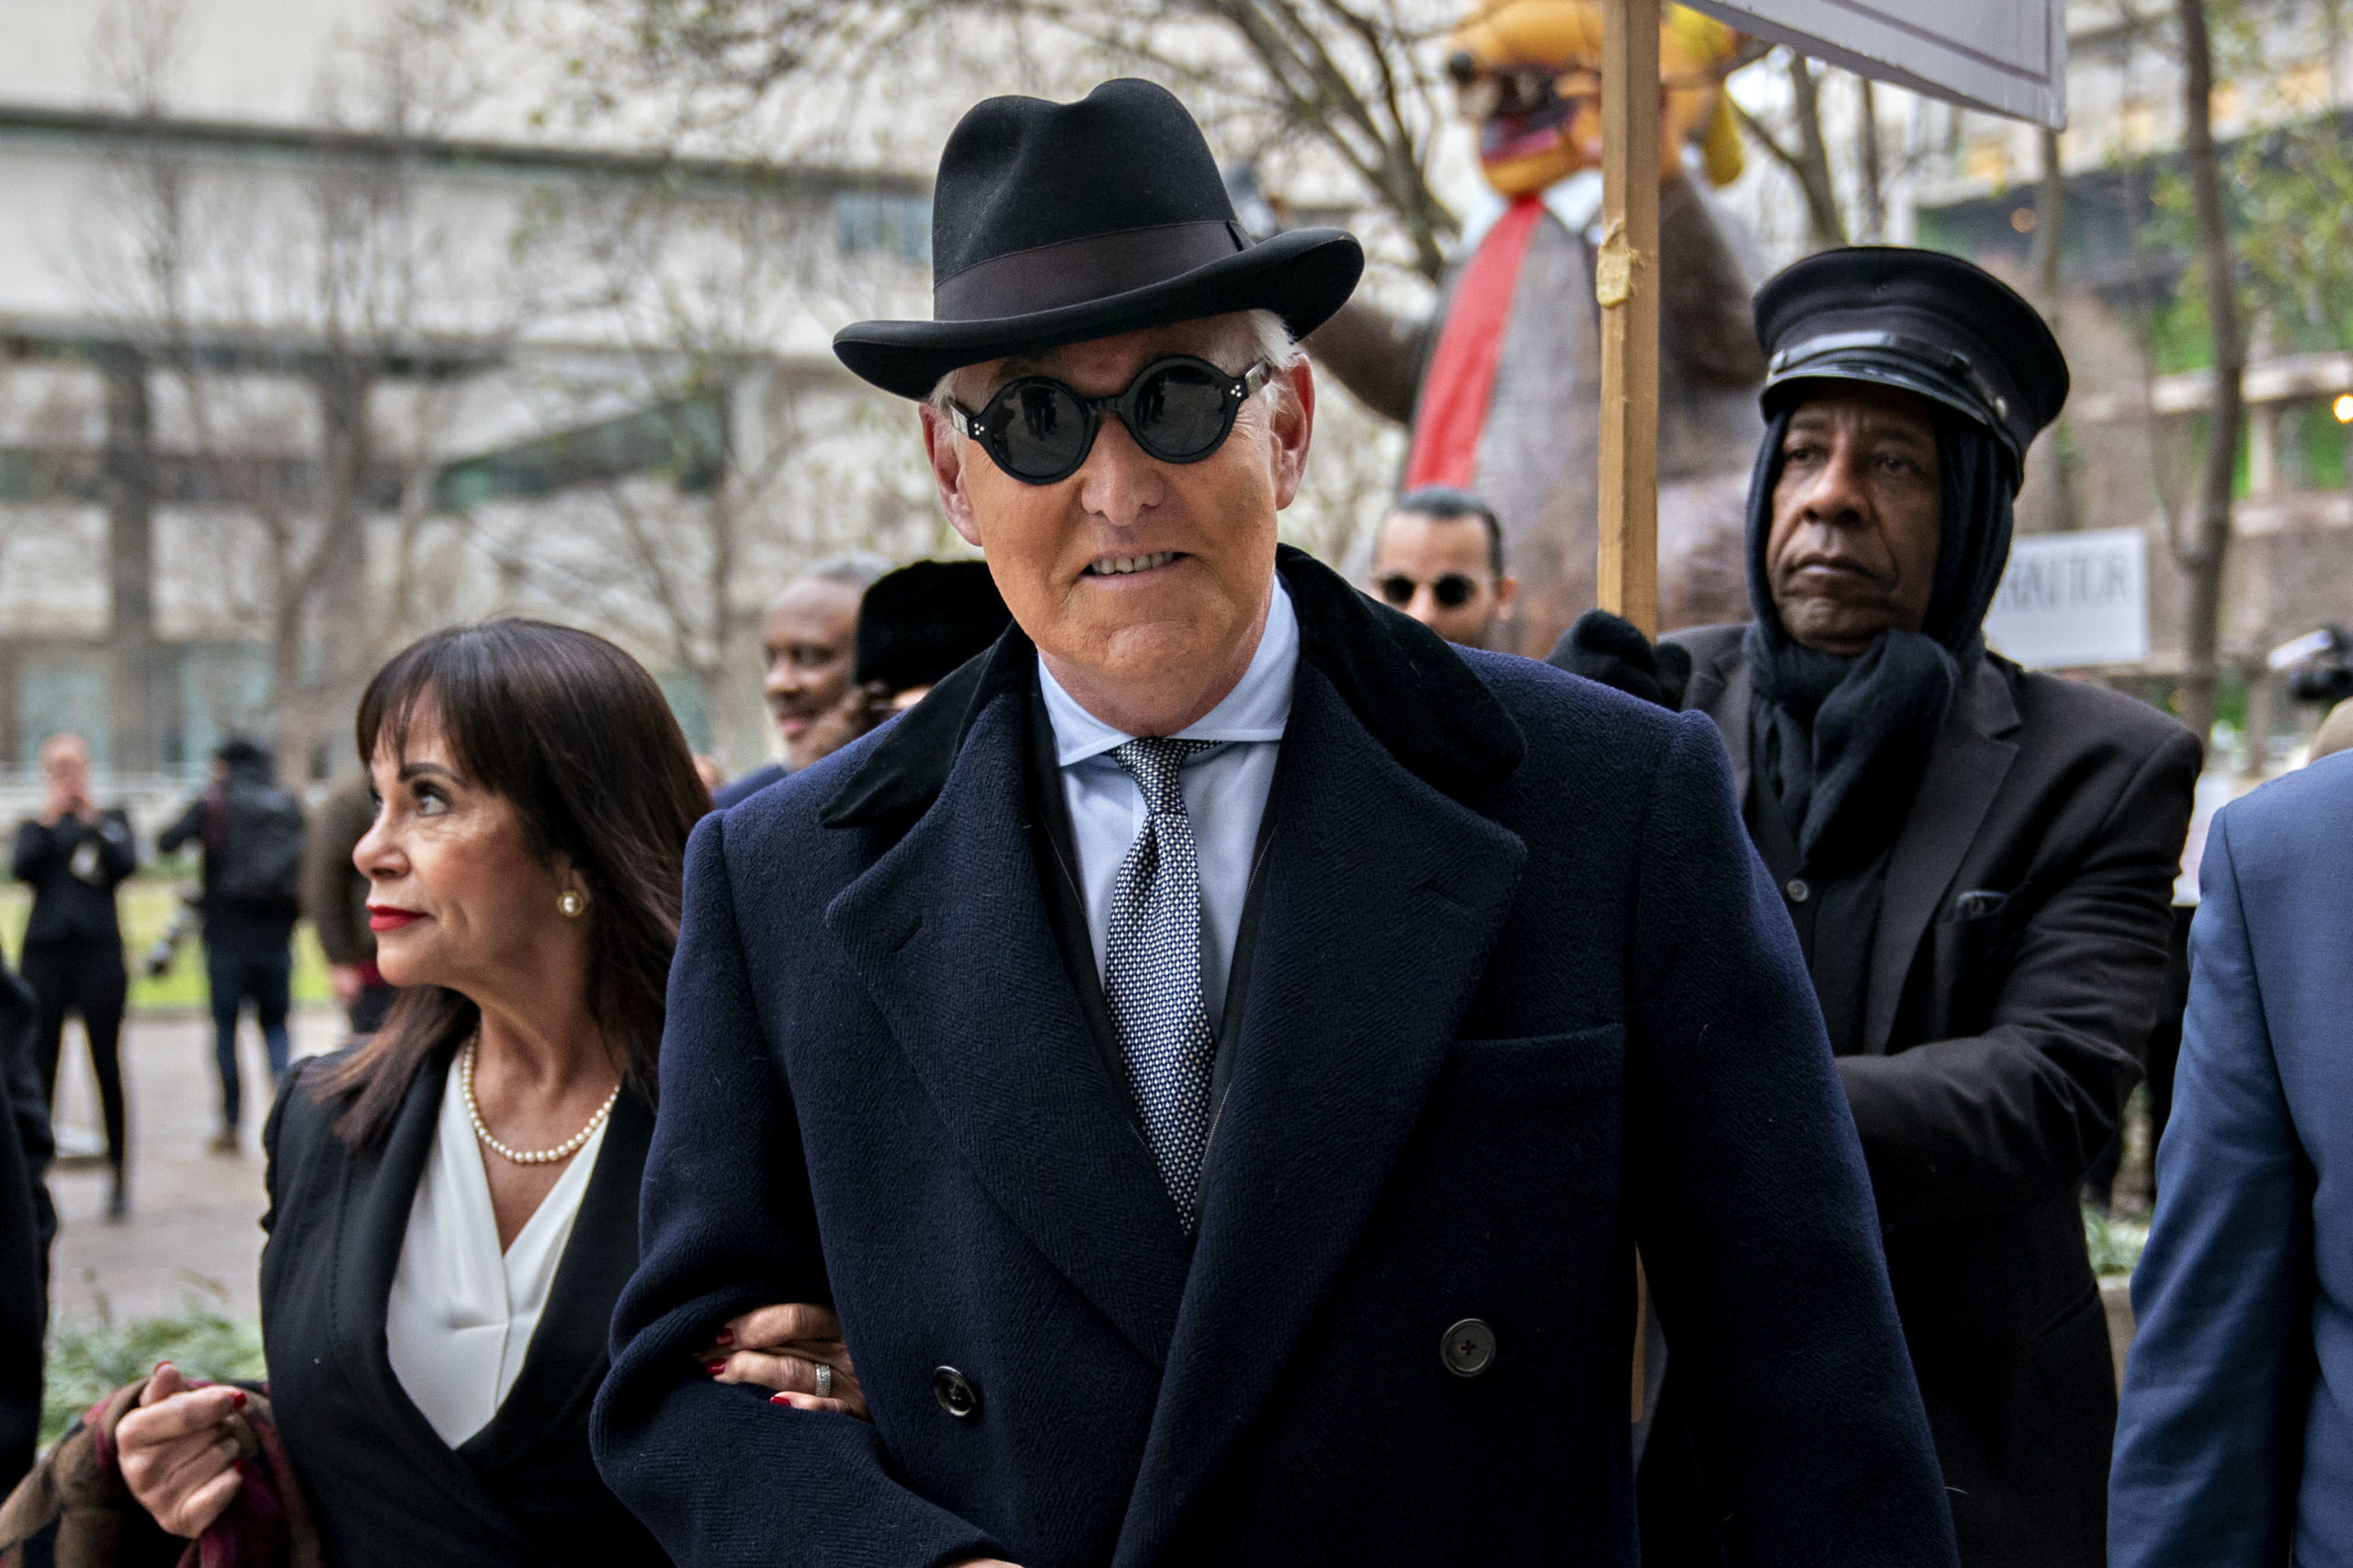 Roger Stone Sentenced to 40 Months in Prison 5